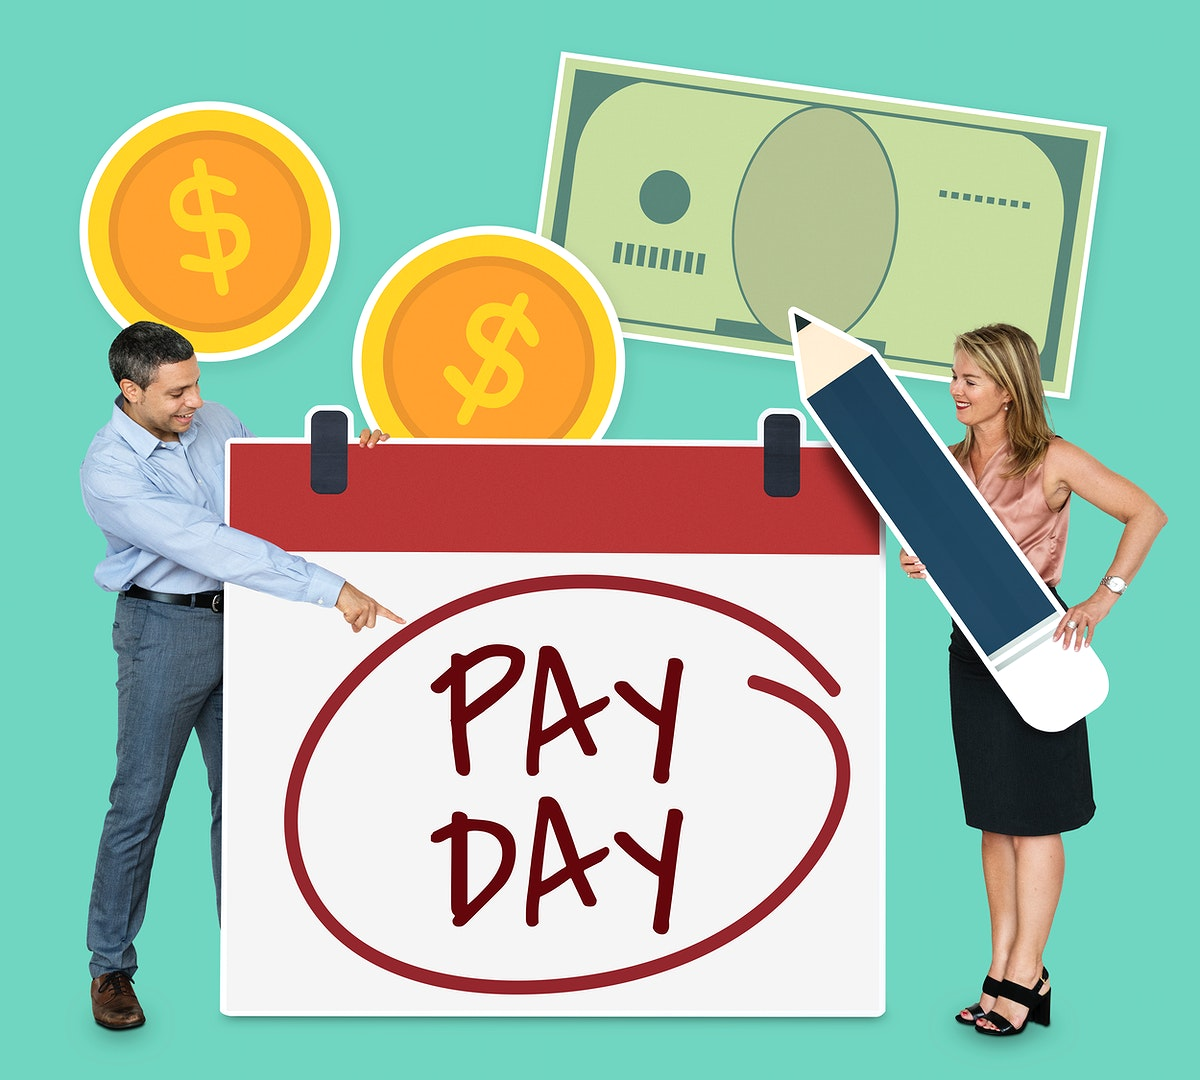 Man pointing at pay day